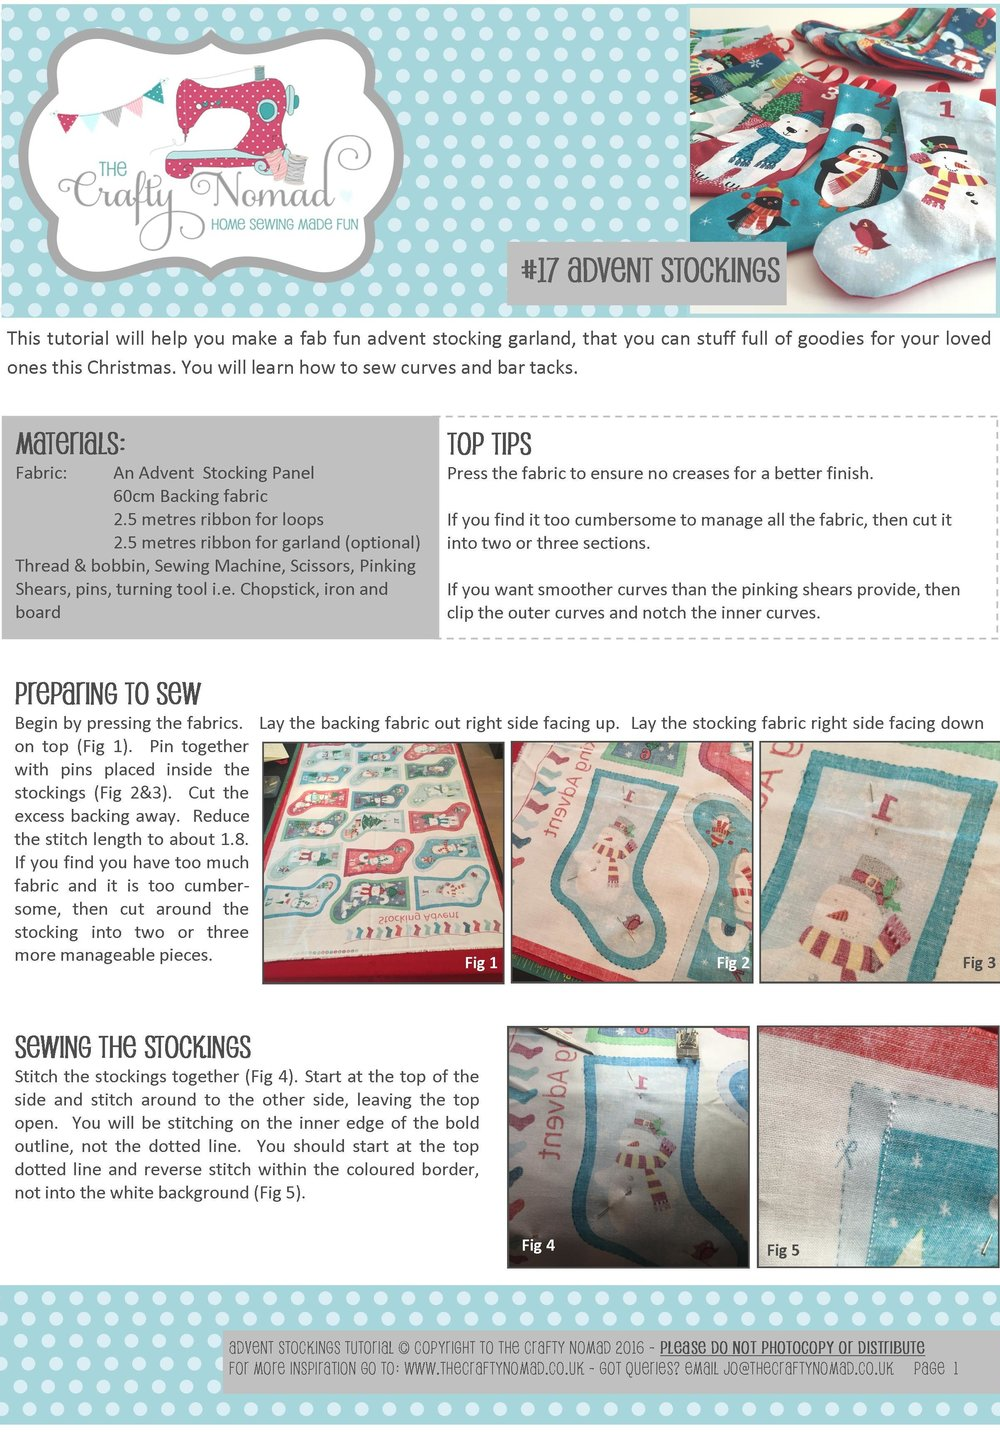 17 Advent Stockings Tutorial Page 1 The Crafty Nomad.jpg